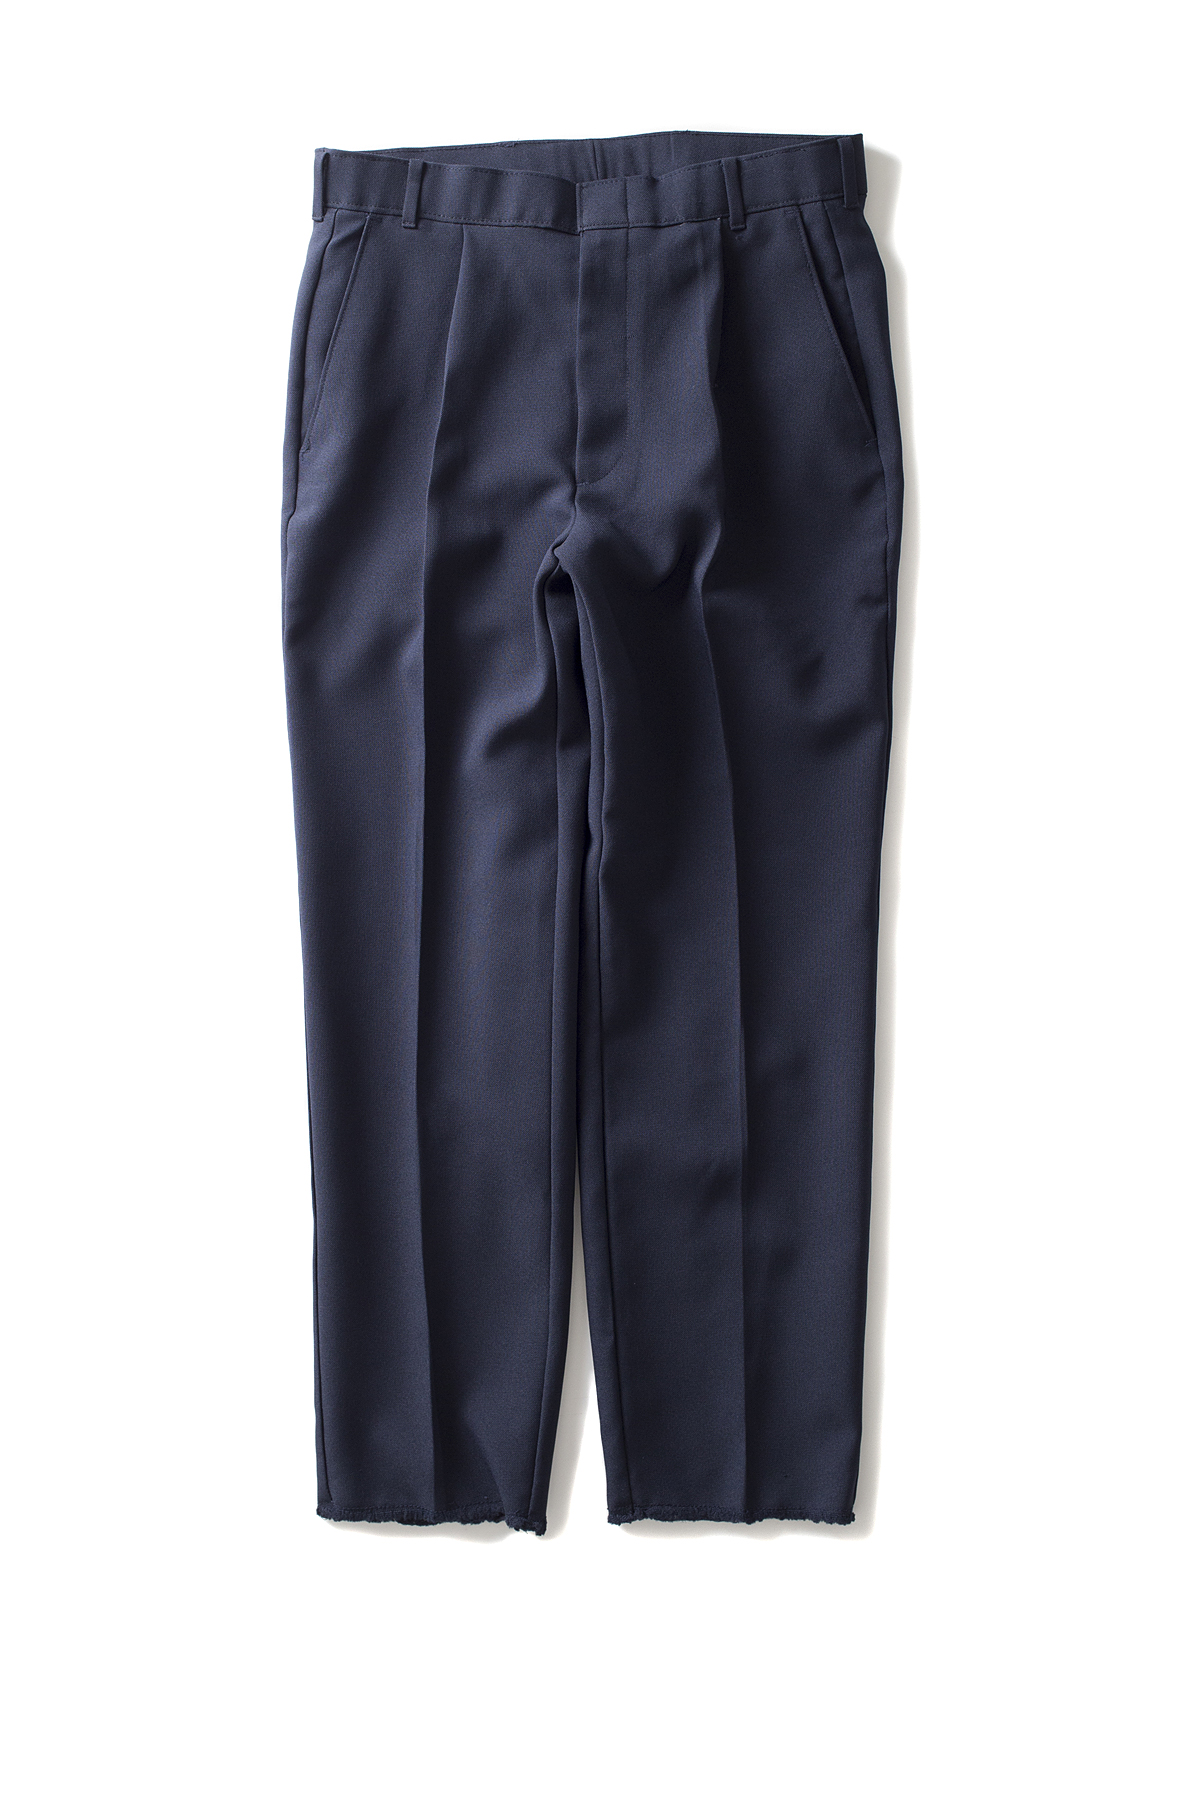 HEXICO : Deformer Ex. Action Slacks 1-Tuck Trousers (Navy)